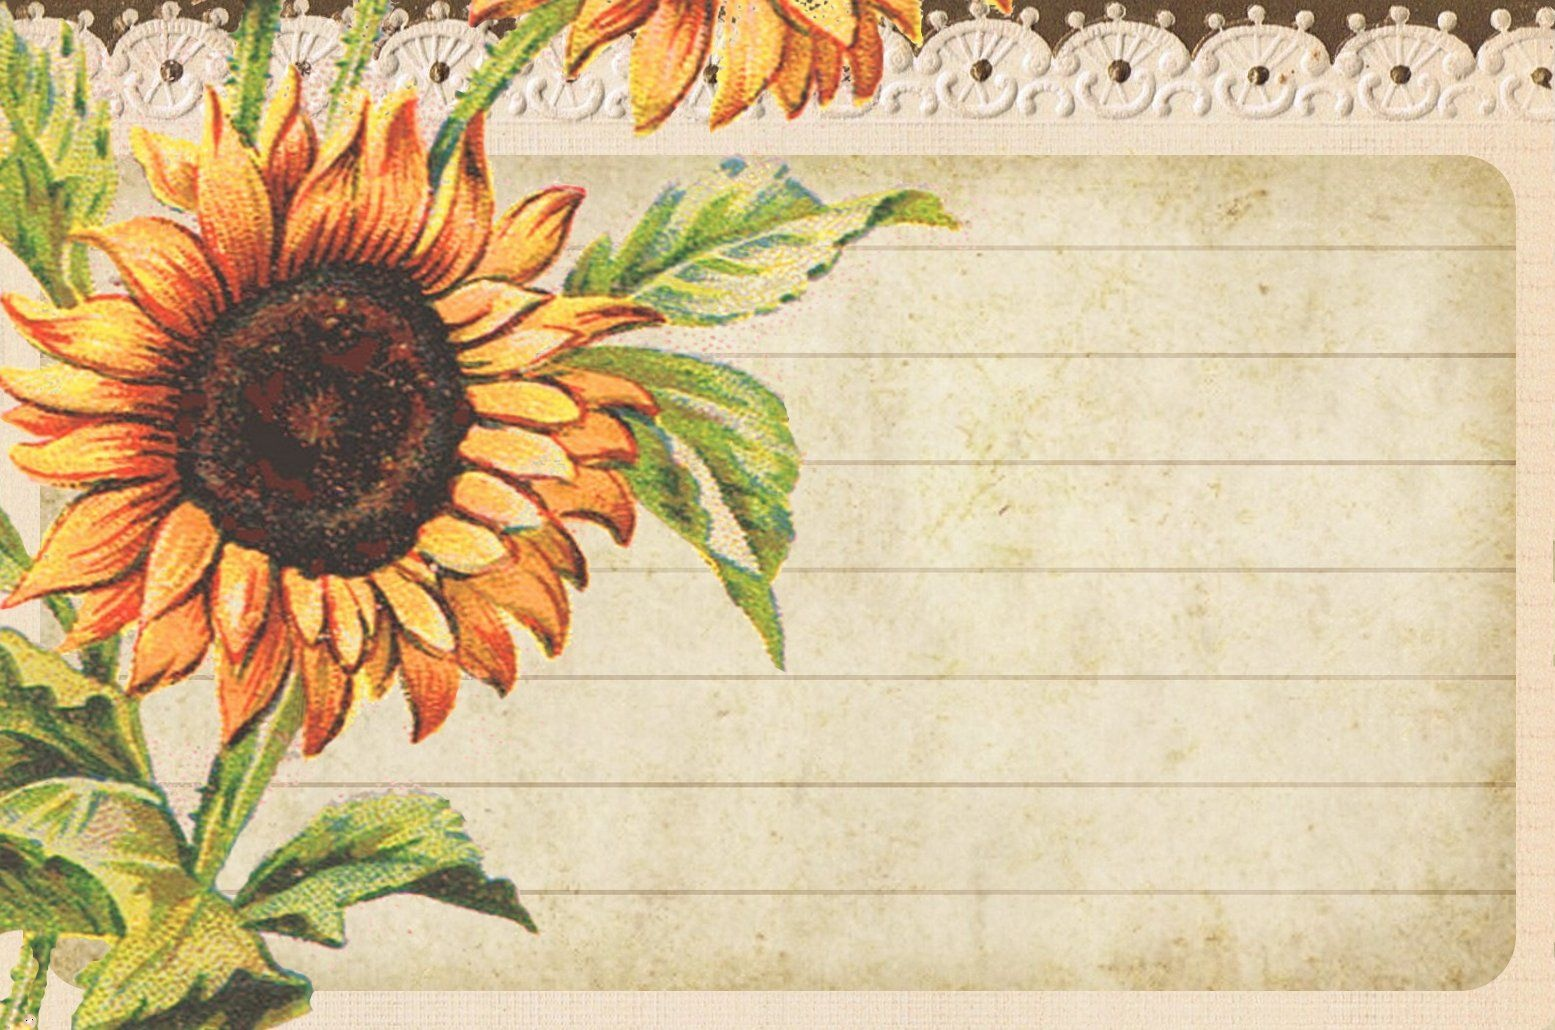 Sunflowers ~ Post Card Sized, Lined Card | Graphics: Lilac - Free Printable Sunflower Stationery